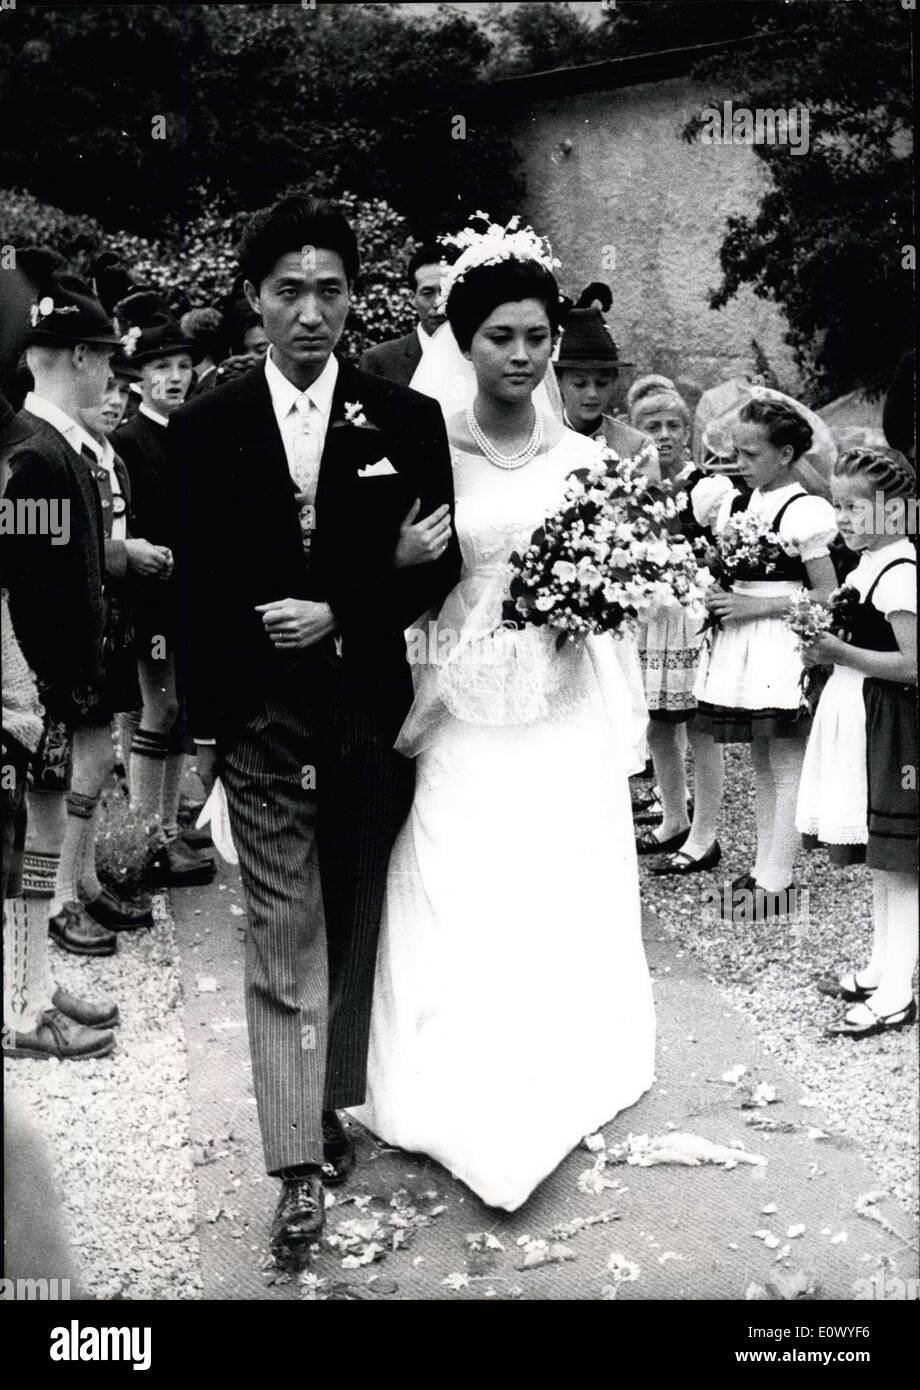 Jun. 22, 1964 - Japanese Wedding in Bavaria: On June 21st the favorite Japanese film star Mariko Okada (Marko Okada) married the ''also Asiatic'' film producer Yoshishige Yoshida (Yoshishige Yoshida) in Aschau (Aschau) / Bavaria. In connection of the film festival in Cannes 1964 in the film beauty was distinguished for the best female production (''Women in the Sand). Other similar distinction she has got in her homeland Japan. Also in Japan the film producer Yoshida succeeded with several films. His most well known work ''Nippon Dasshatsu'' - Stock Image